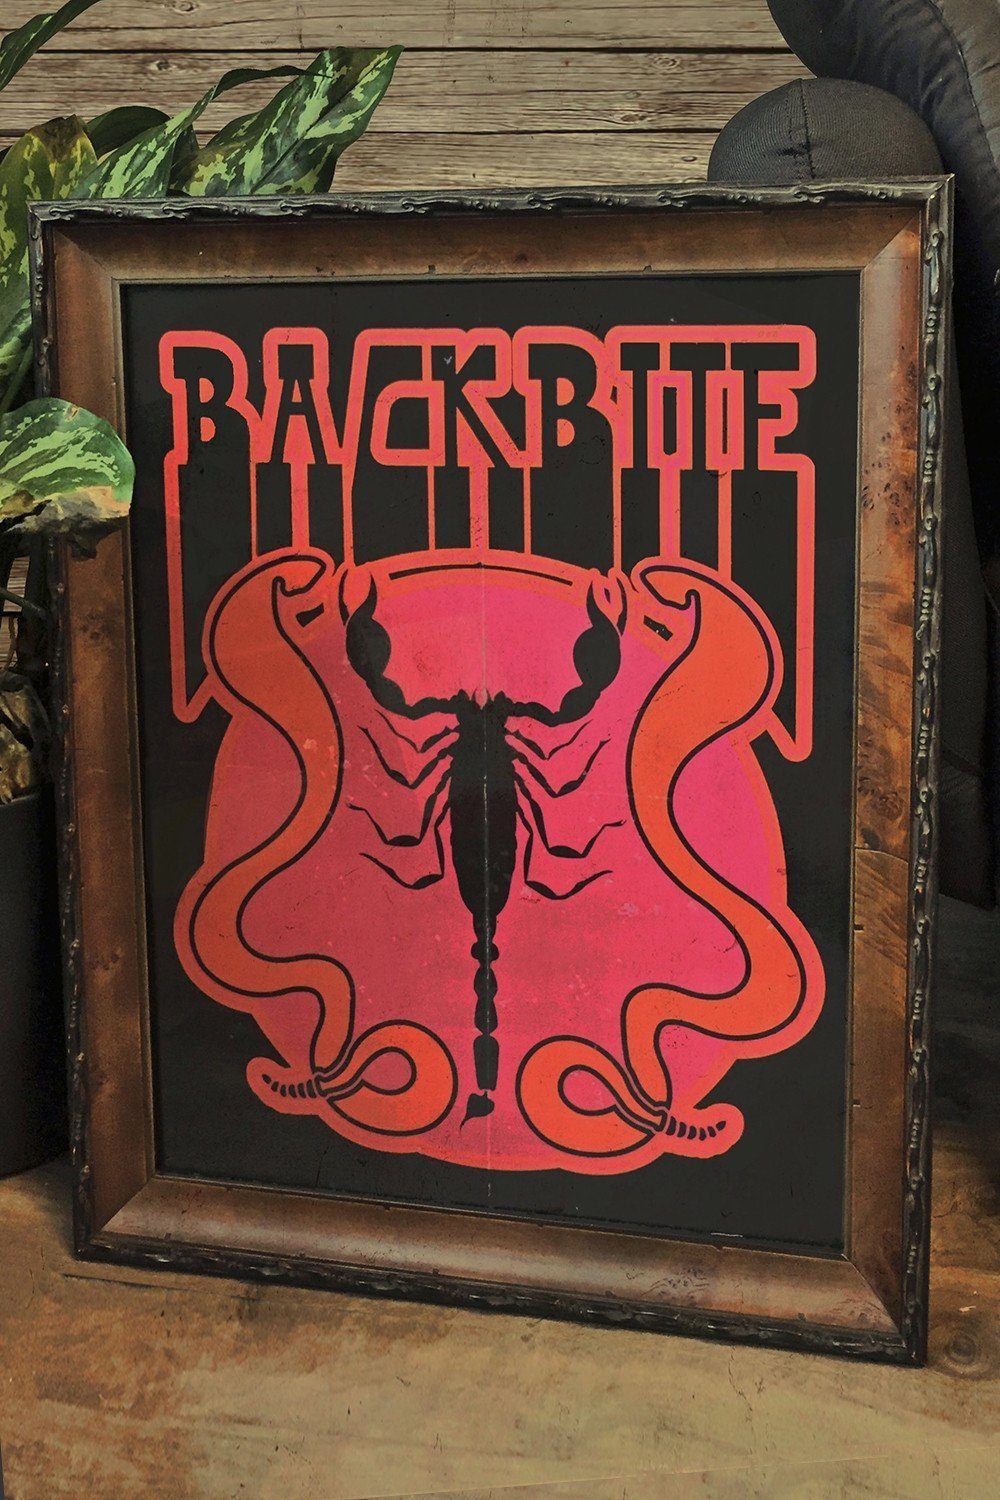 Backbite Scorpion and Snakes Original 16x20 Matte Poster, Home Adornment, HARLEY & J